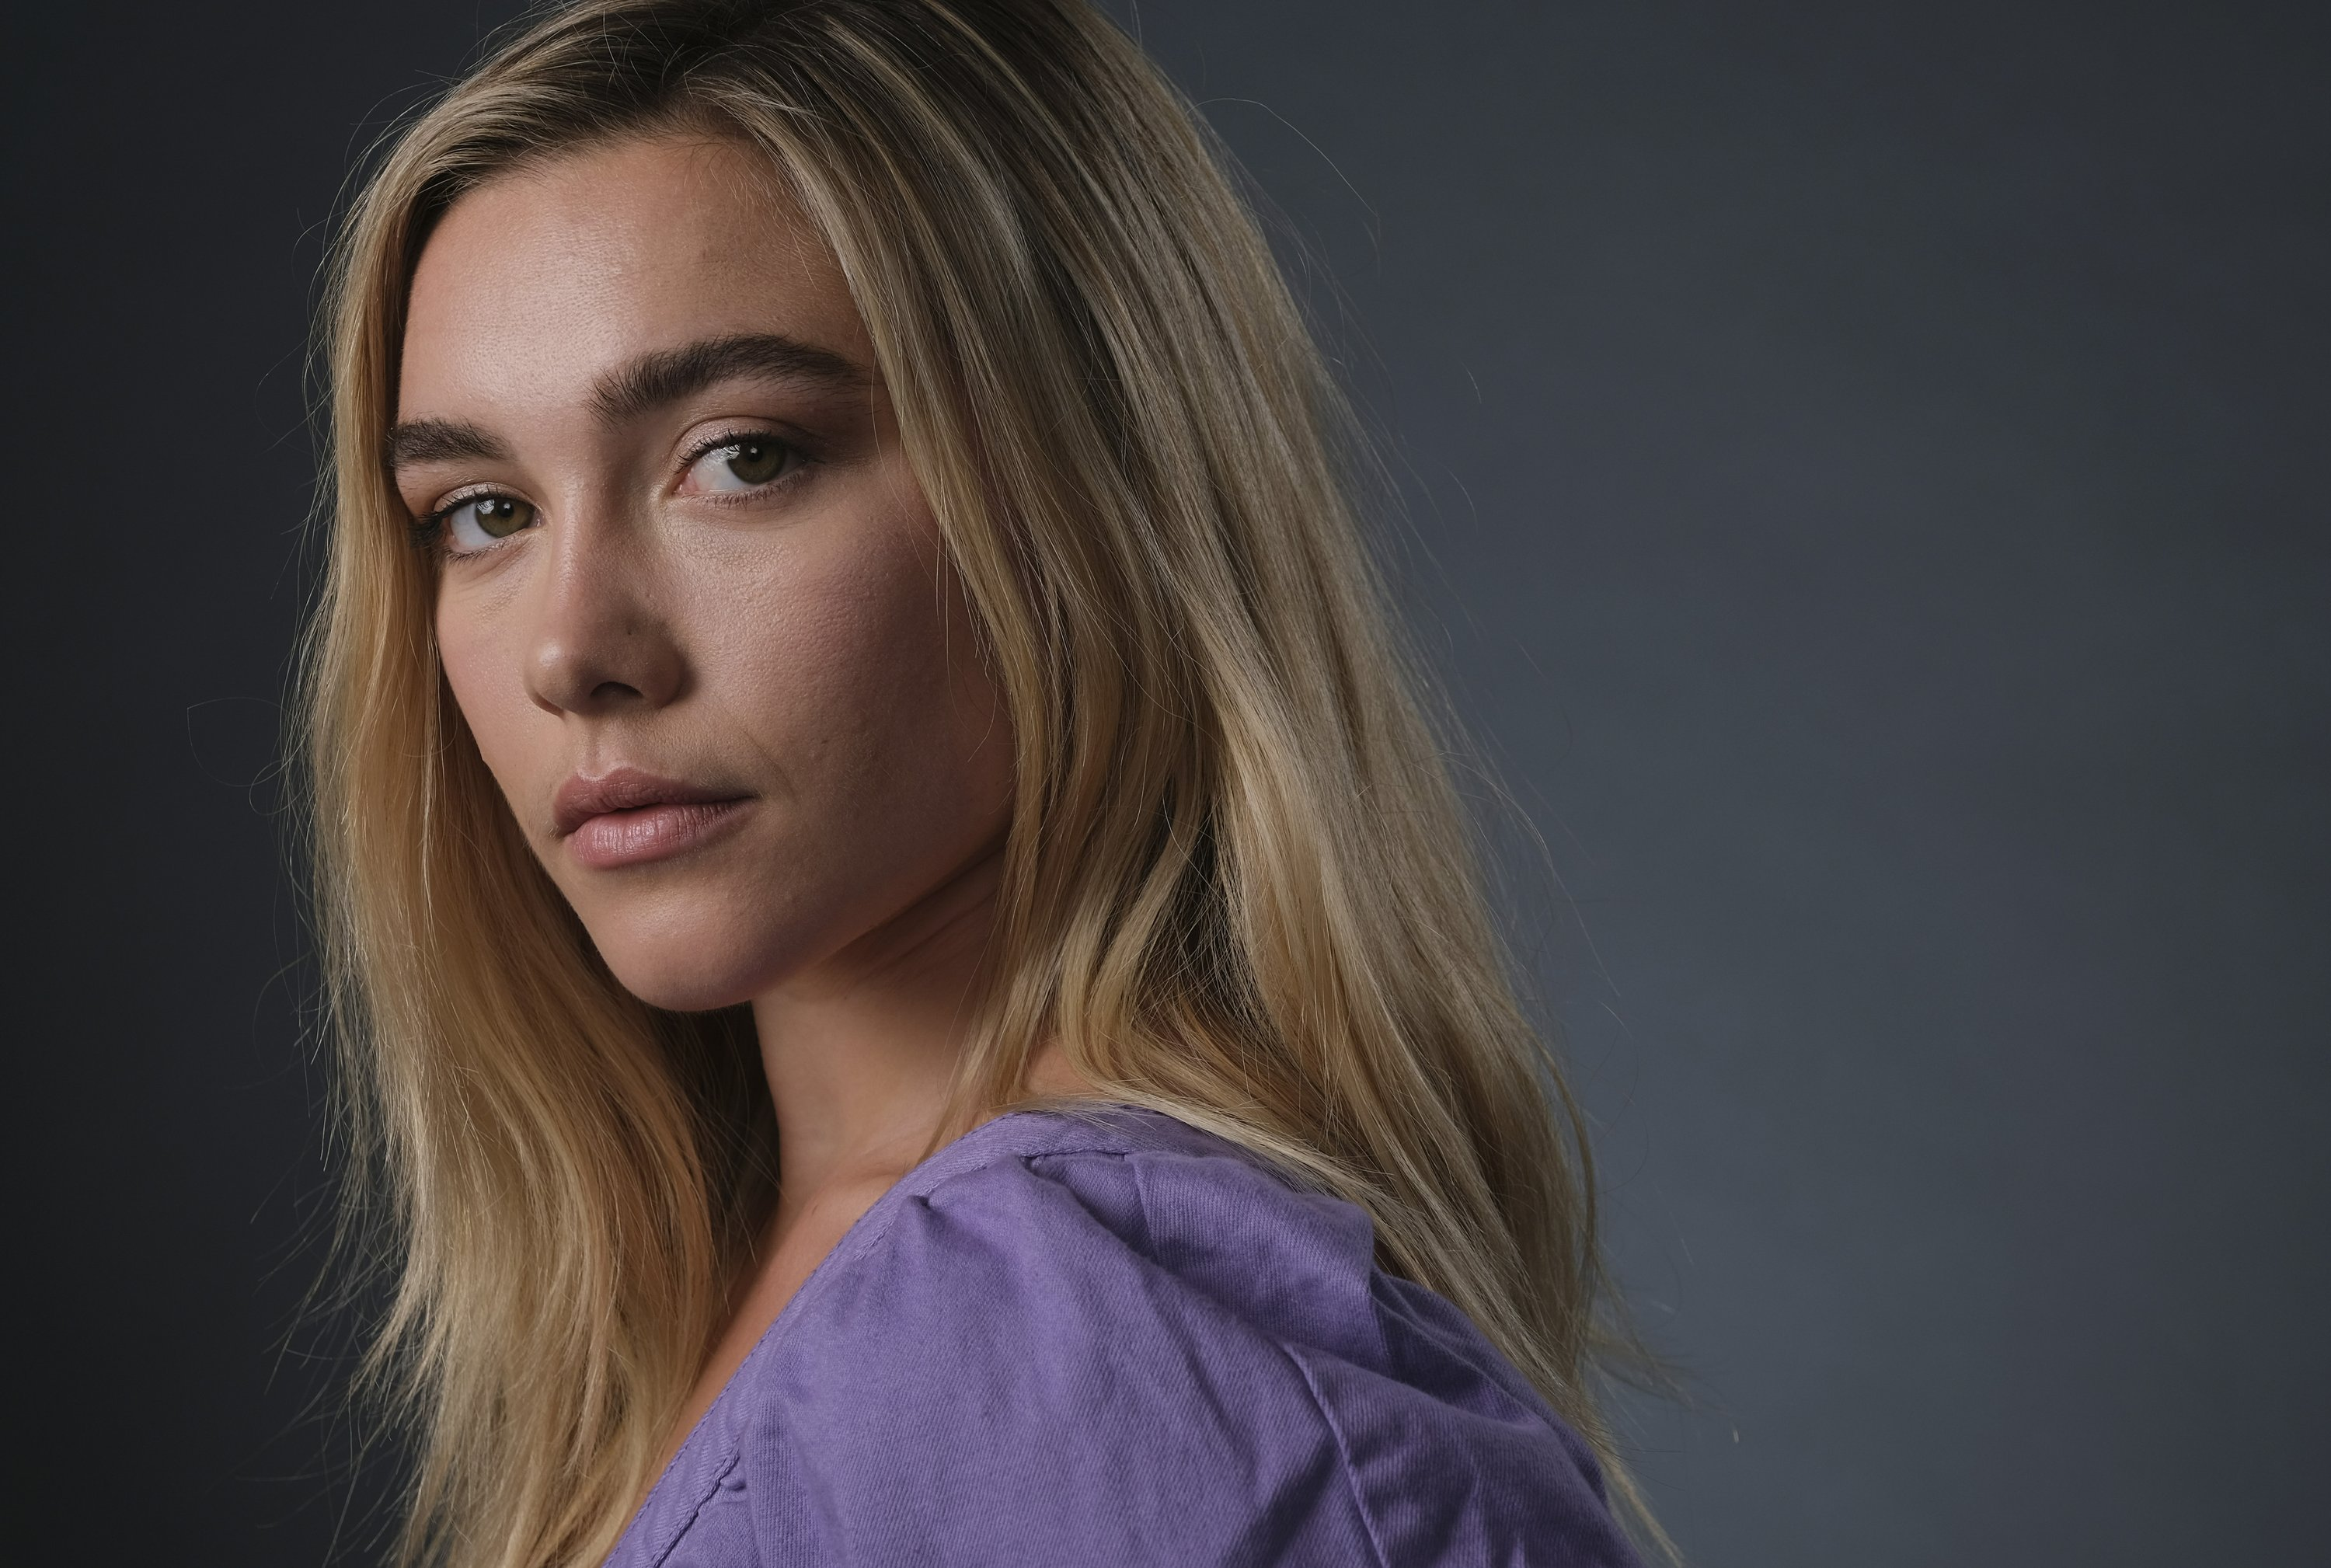 Florence Pugh Top >> 2019 Breakthrough Entertainer Florence Pugh Owns The Year